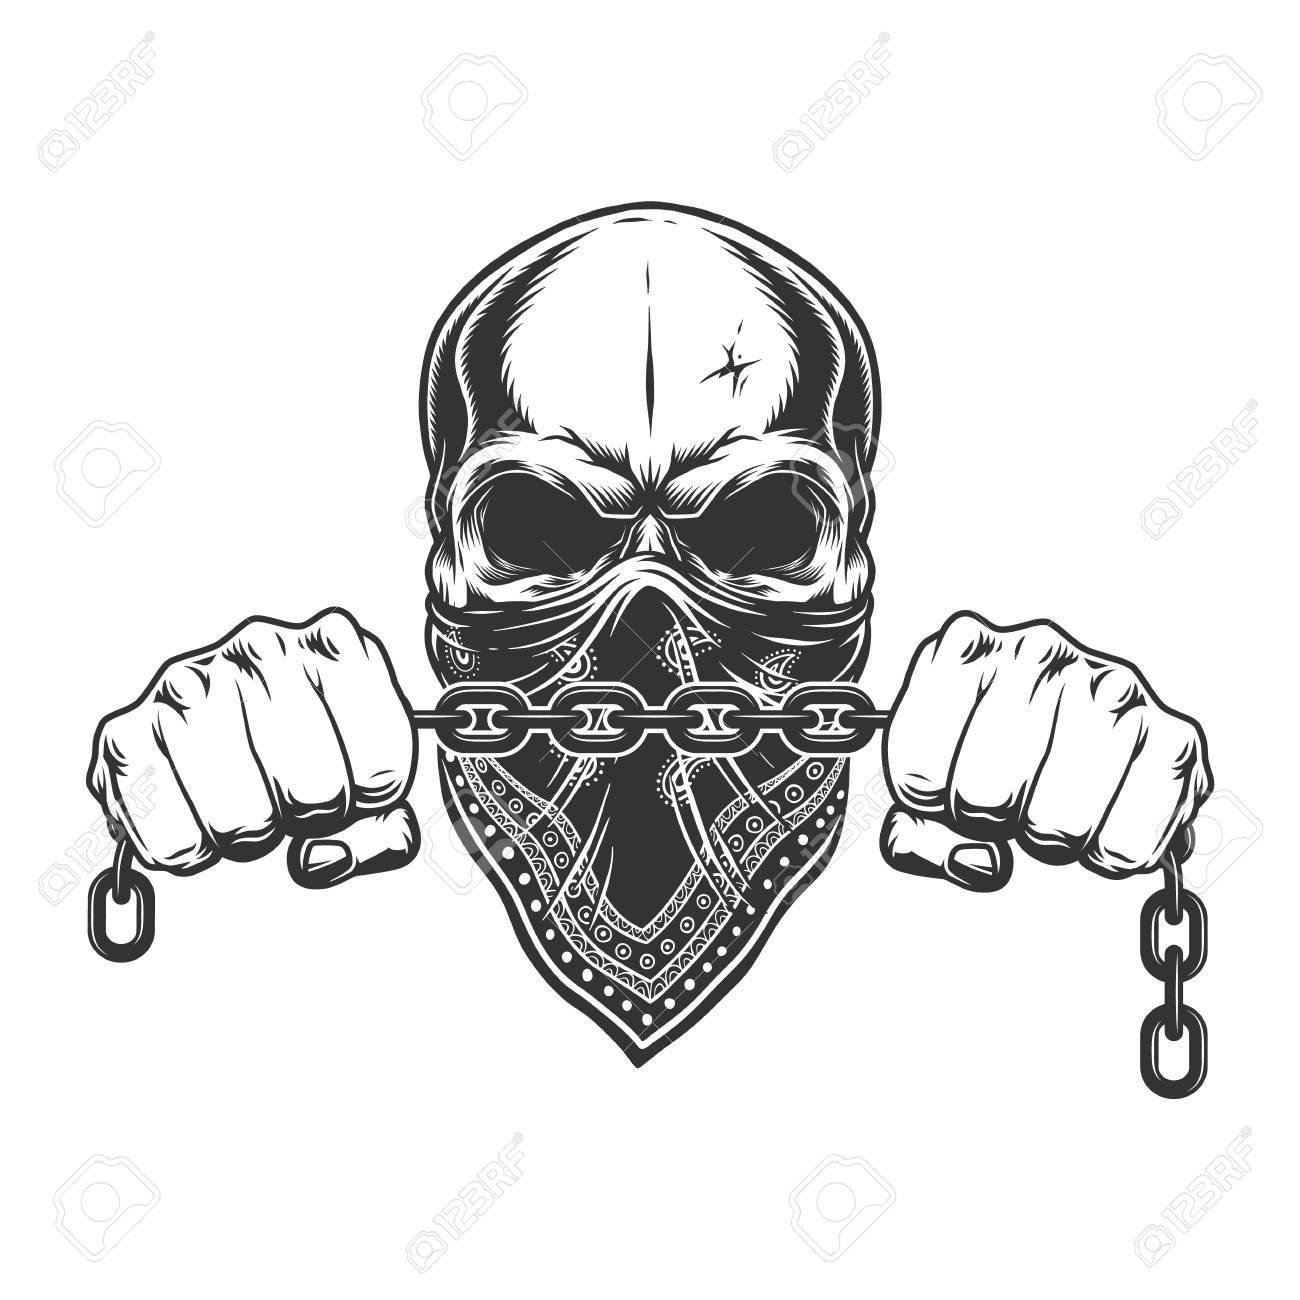 Vintage criminal concept with skull in bandana on face and male hands holding chain isolated vector illustration - 115207412